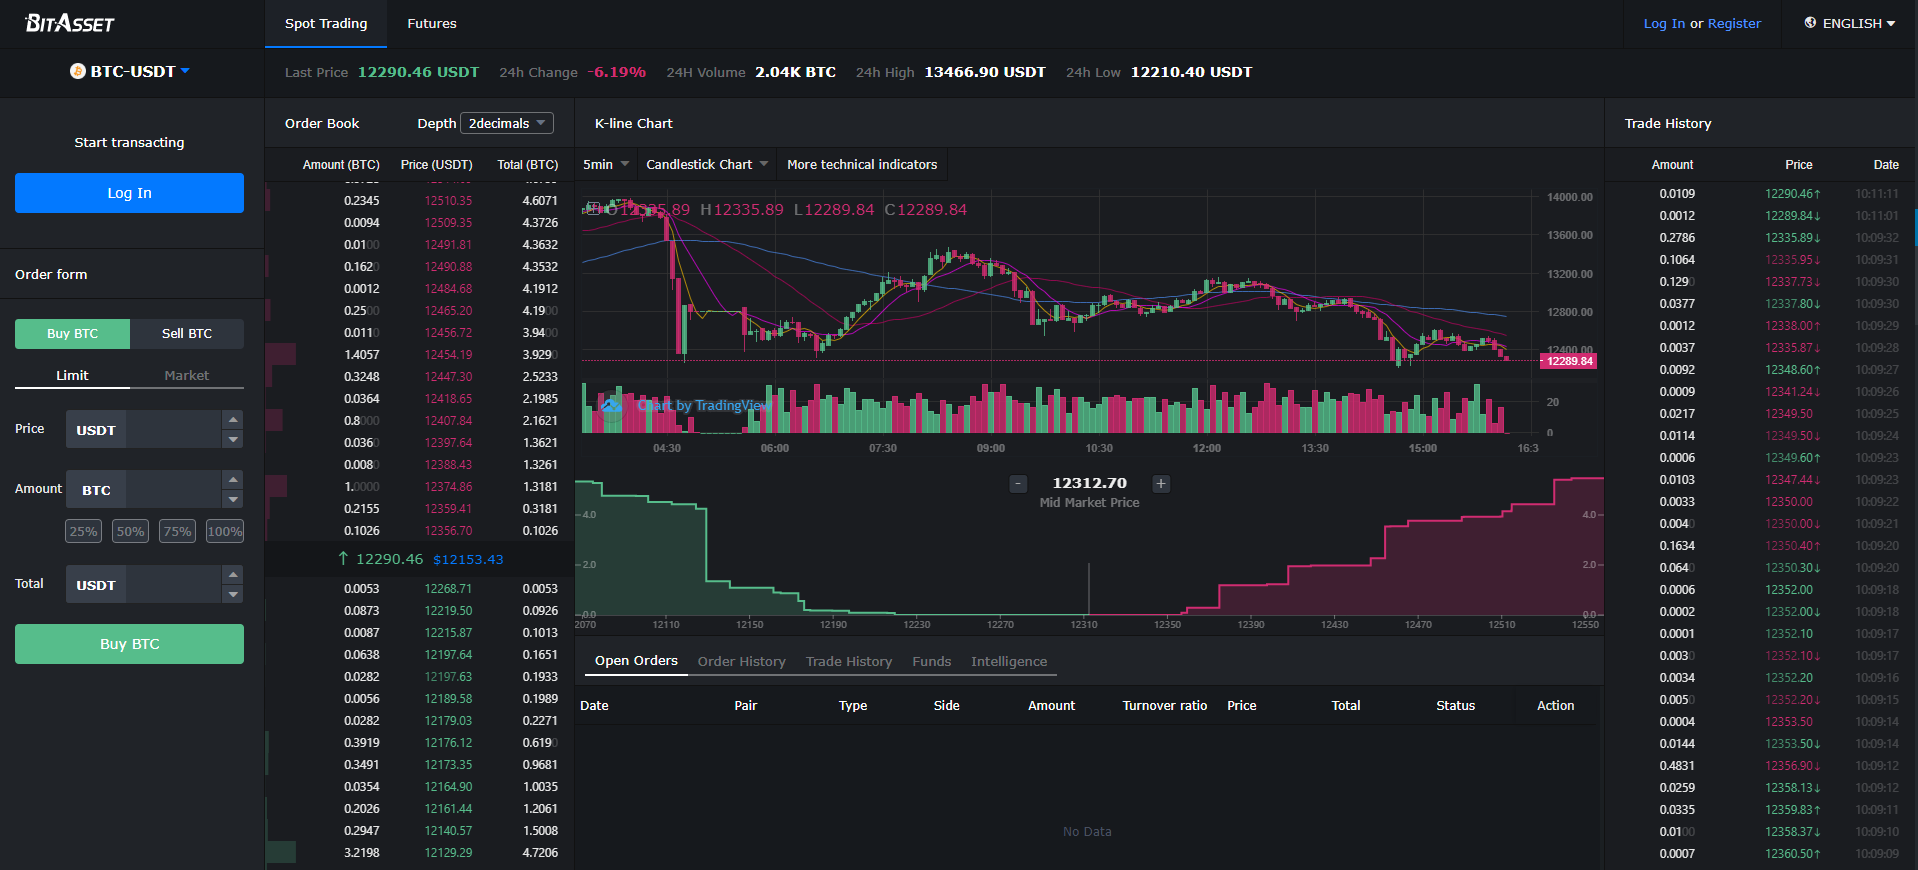 BitAsset Exchange Trading View